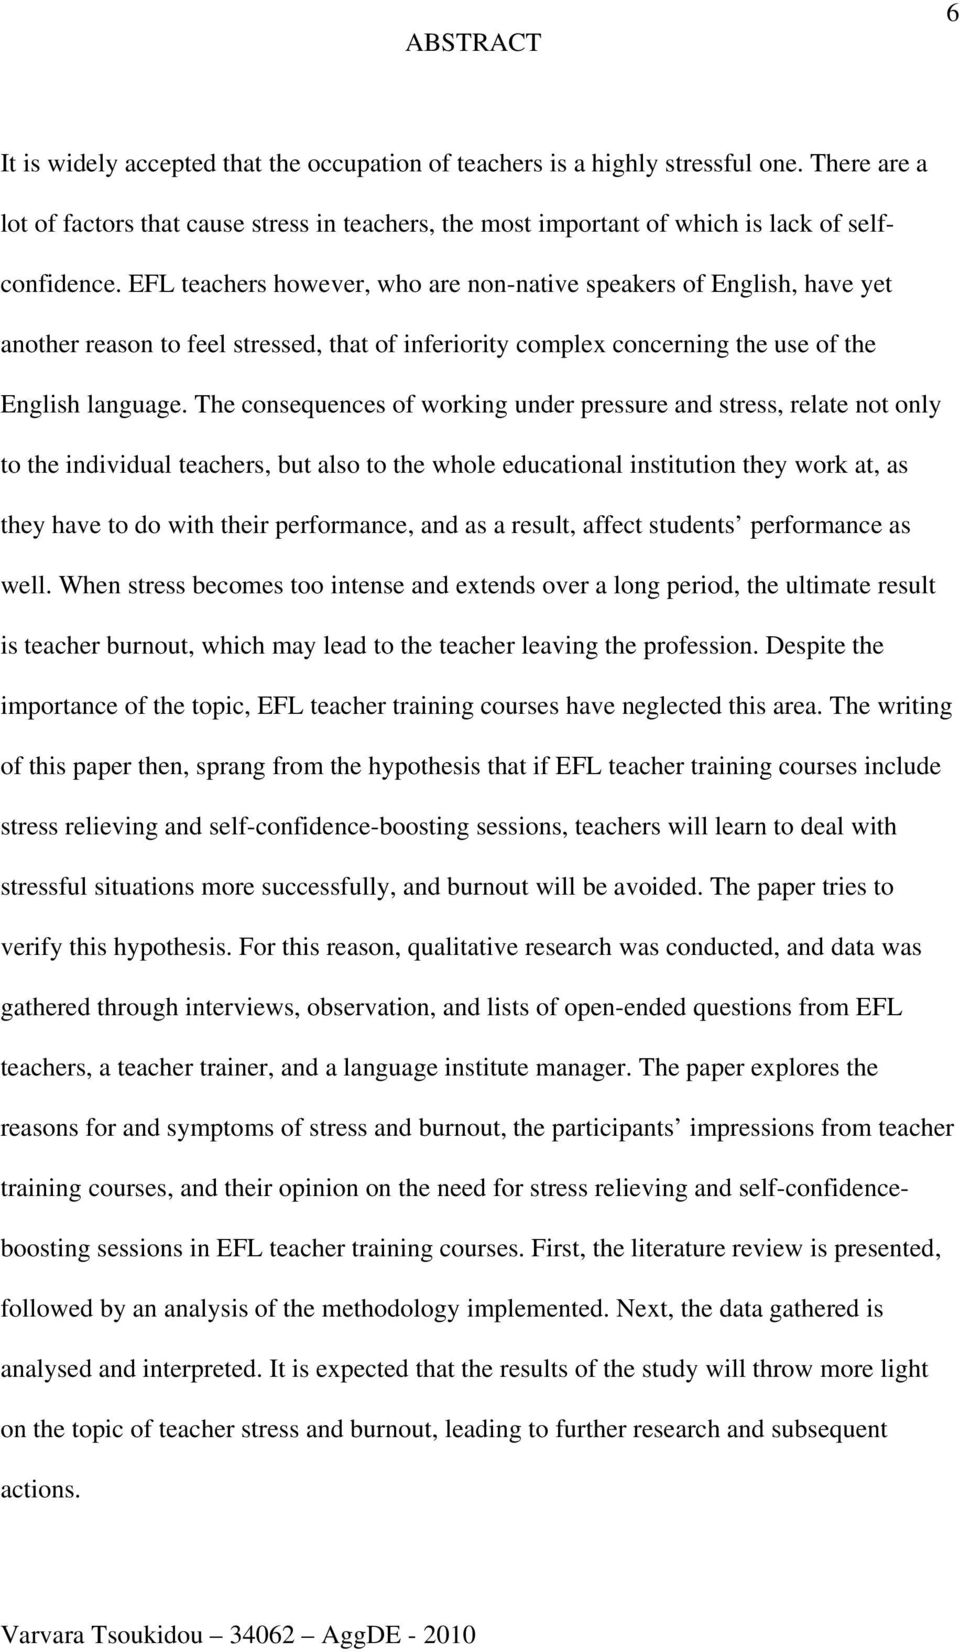 EFL teachers however, who are non-native speakers of English, have yet another reason to feel stressed, that of inferiority complex concerning the use of the English language.